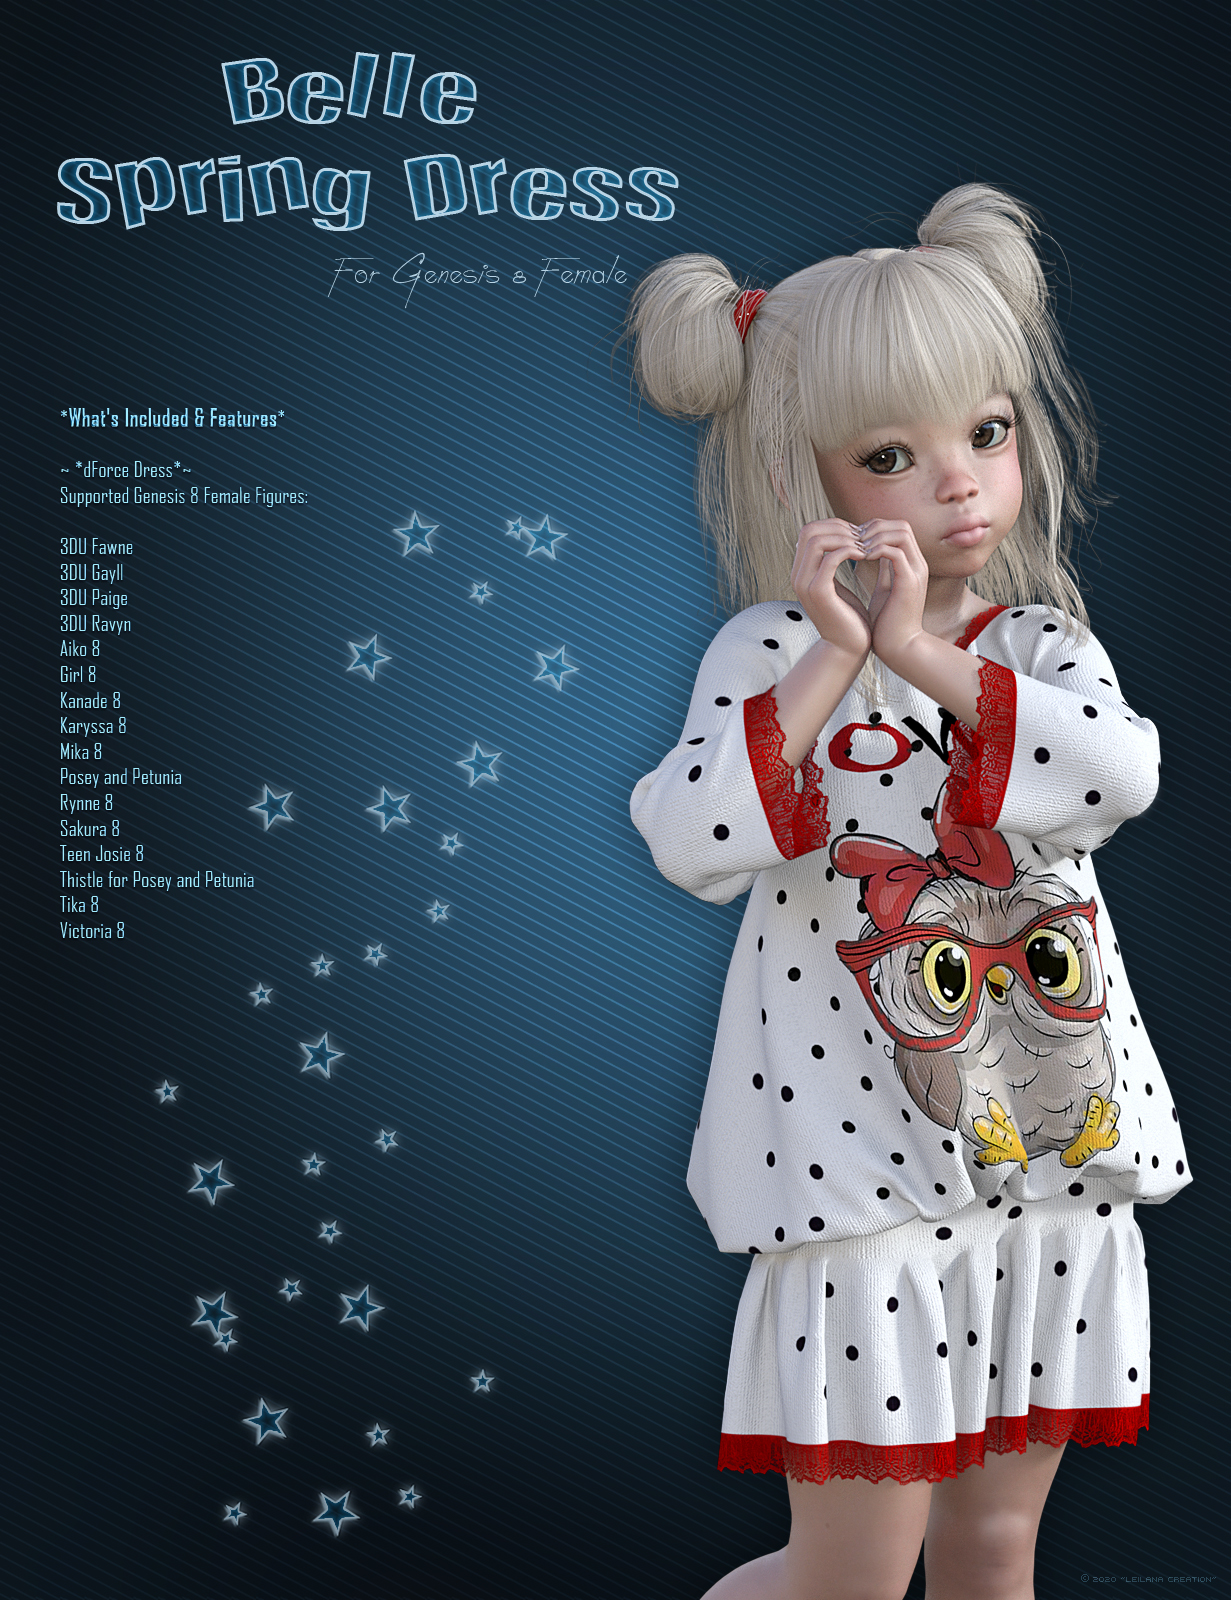 Belle Spring Dress by Leilana